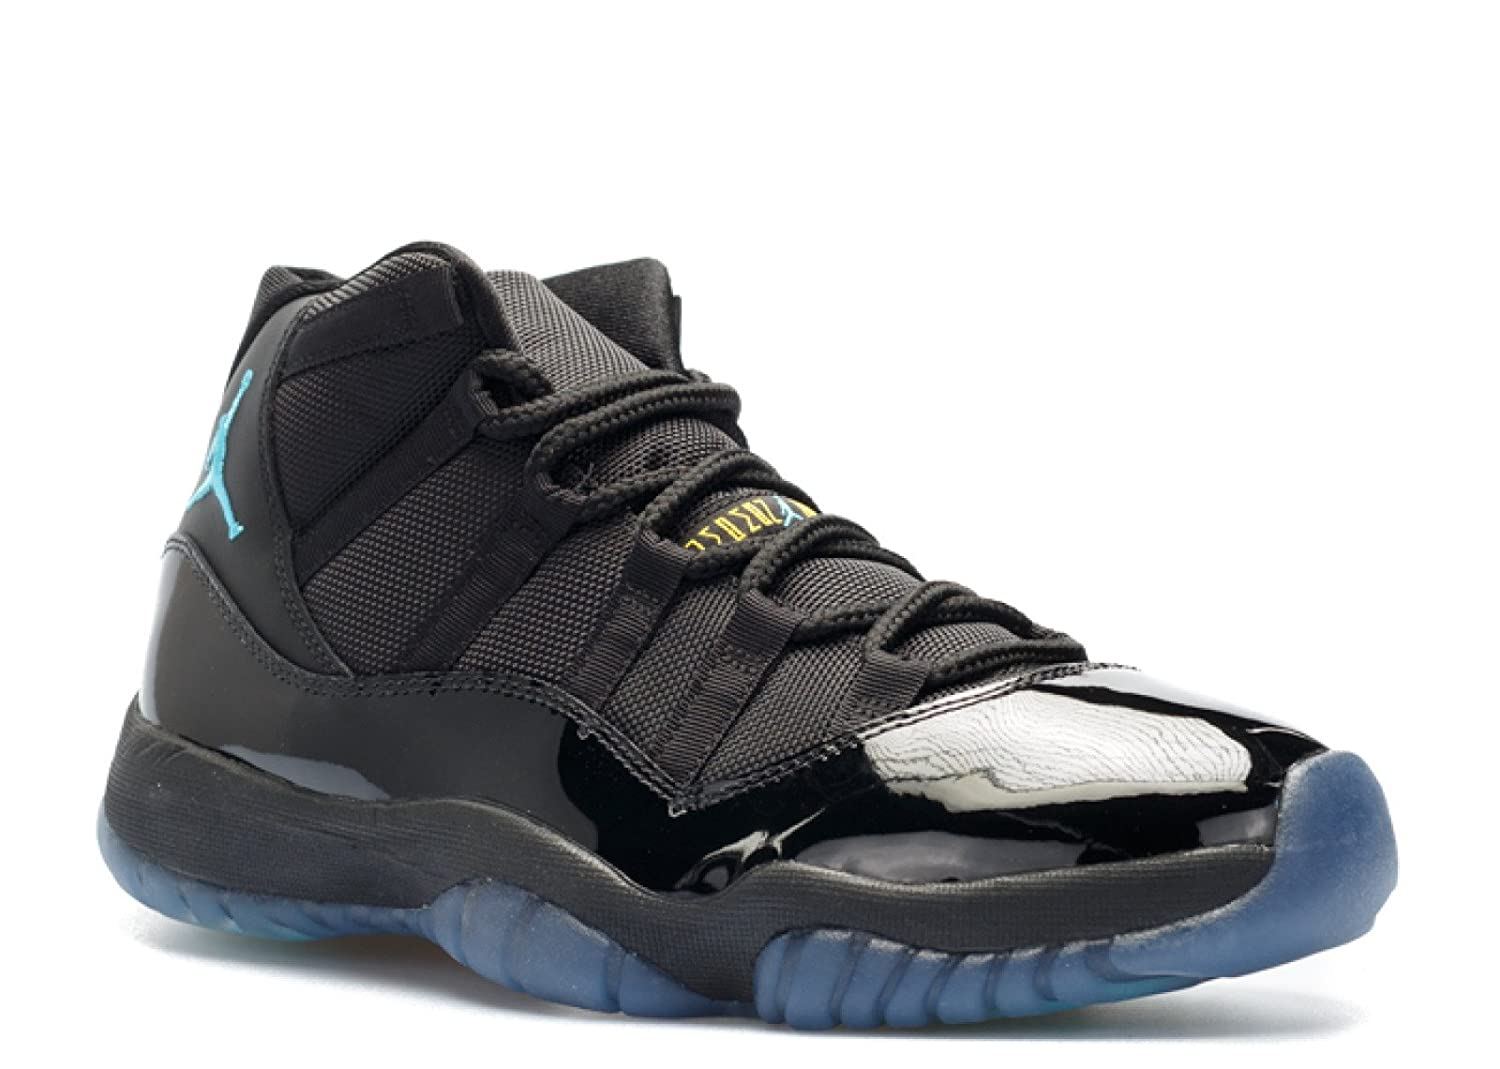 Nike Herren Air Jordan 11 Retro Turnschuhe  9.5|Black, Gamma Blue-varsity Maize